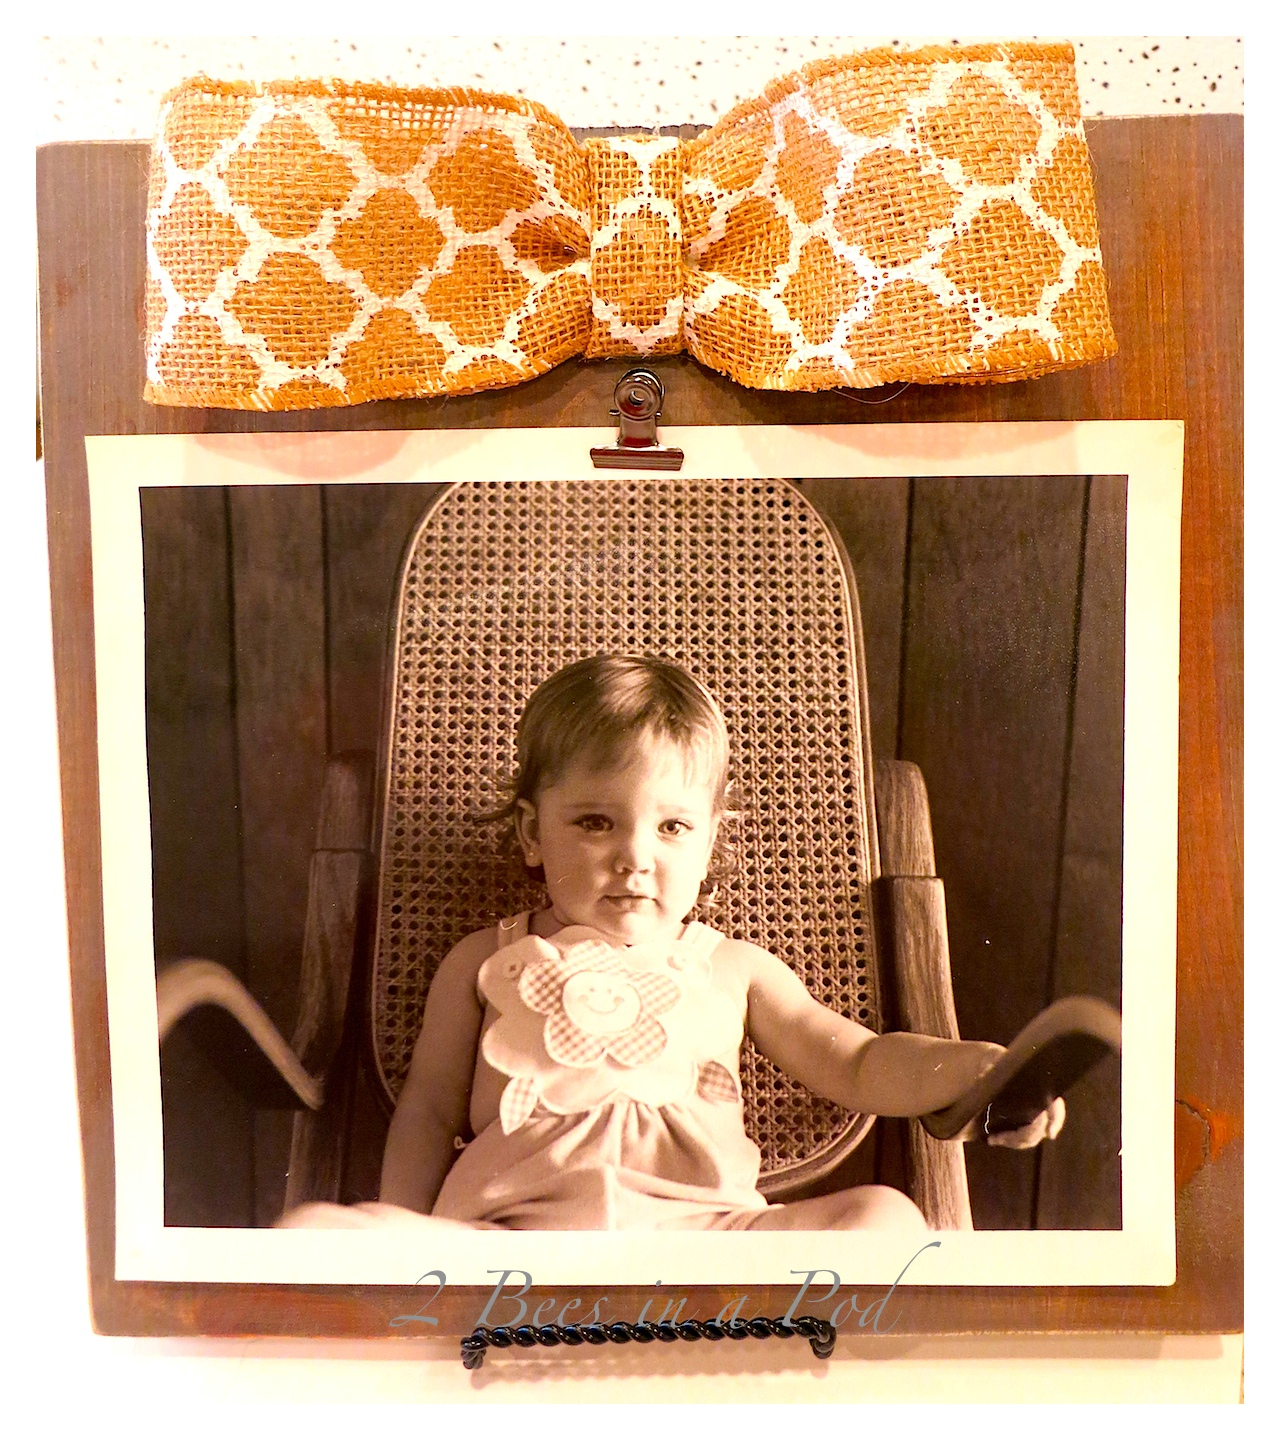 Here's a super-cute DIY frame that takes just minutes to put together. In just 4 easy steps you can make your very own frame!